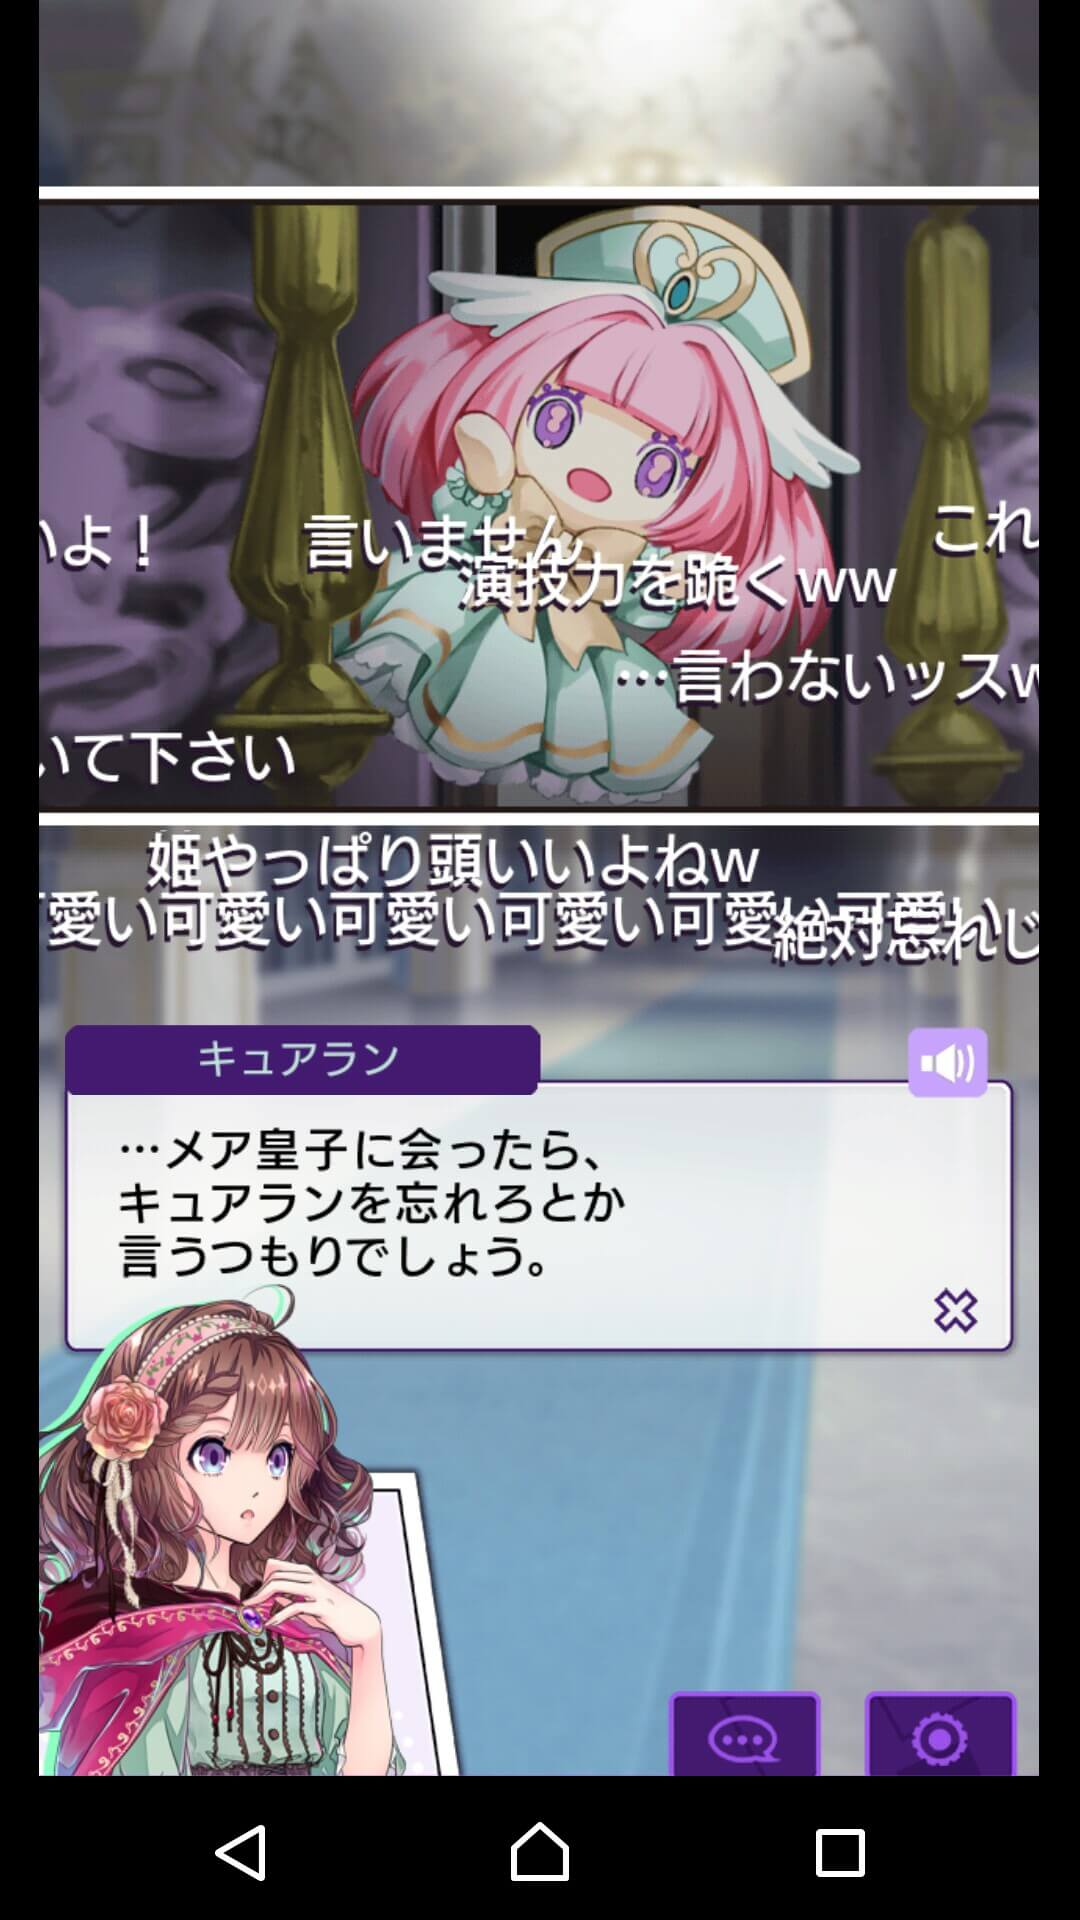 DAME×PRINCE19 ニコ動のコメントのような画面